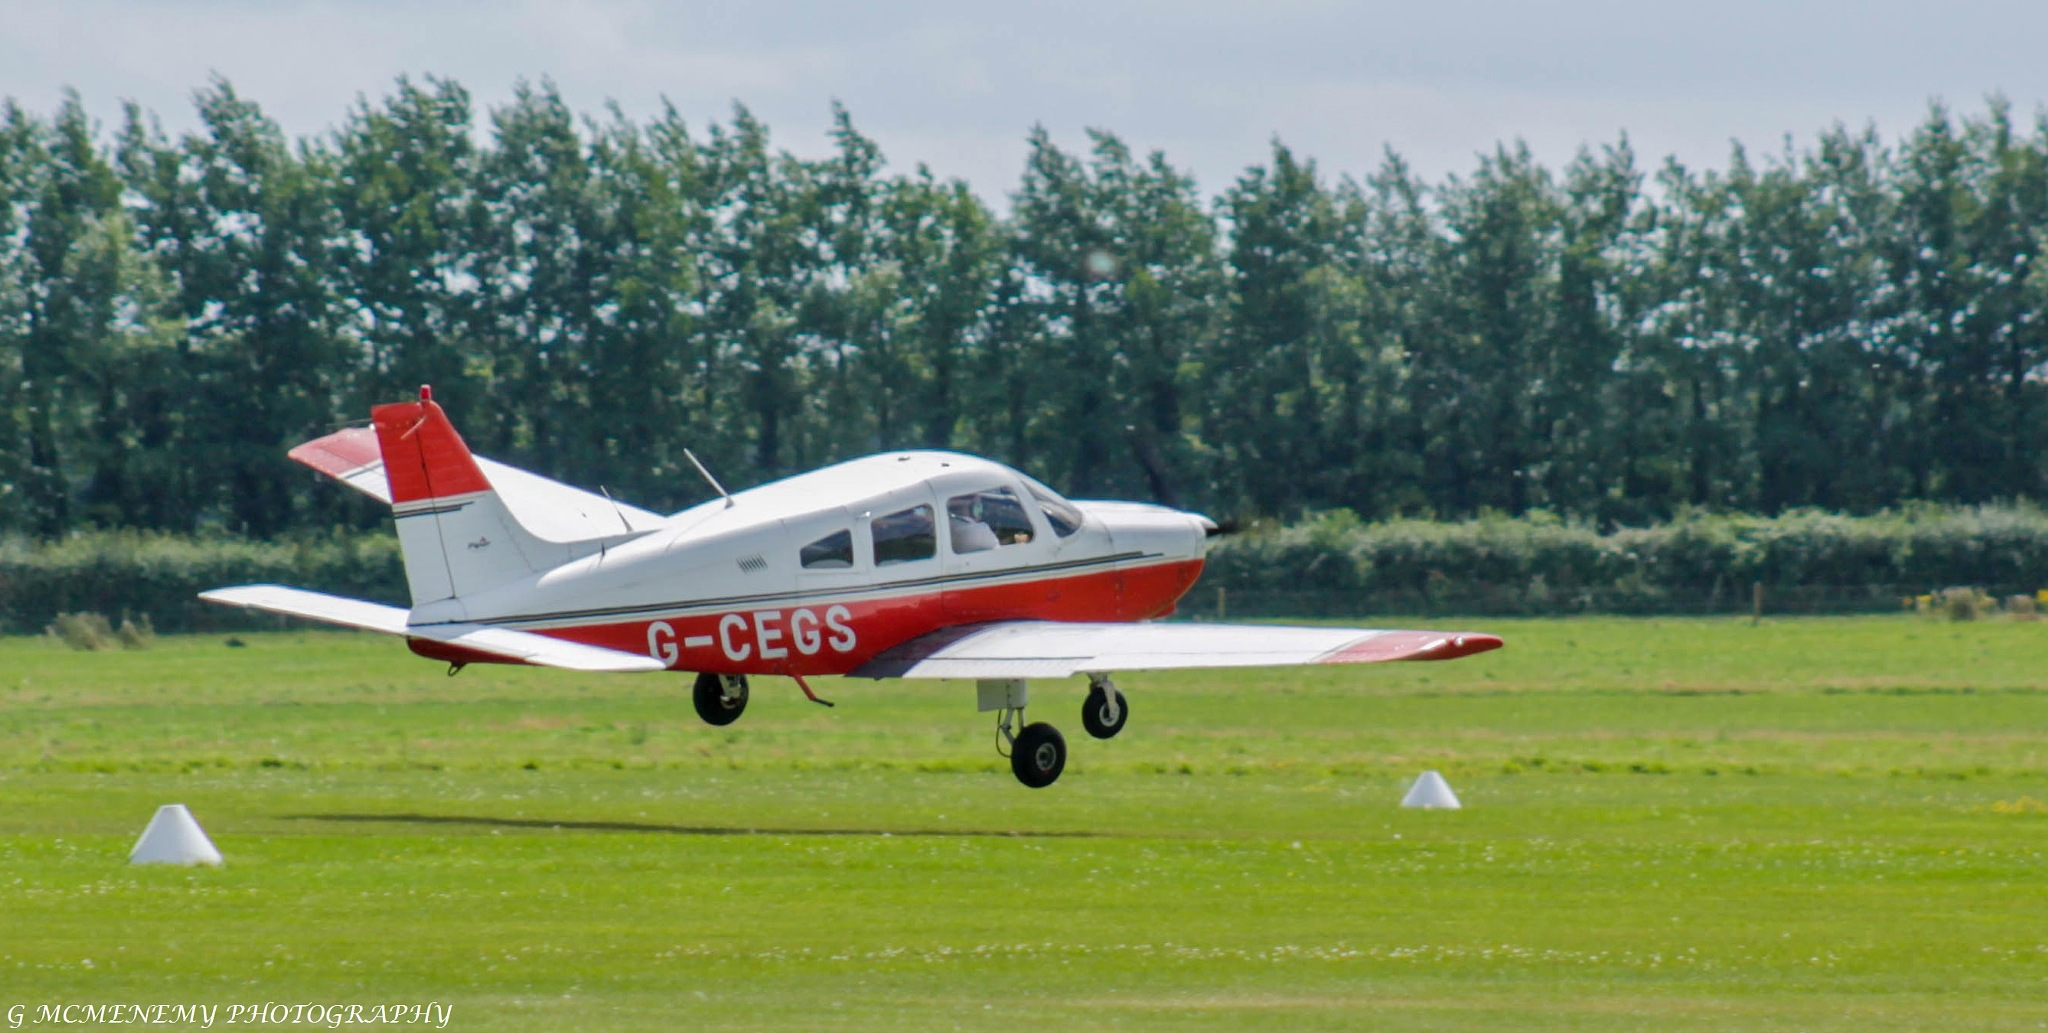 1977 Piper PA-28-161 by george.mcmenemy.7